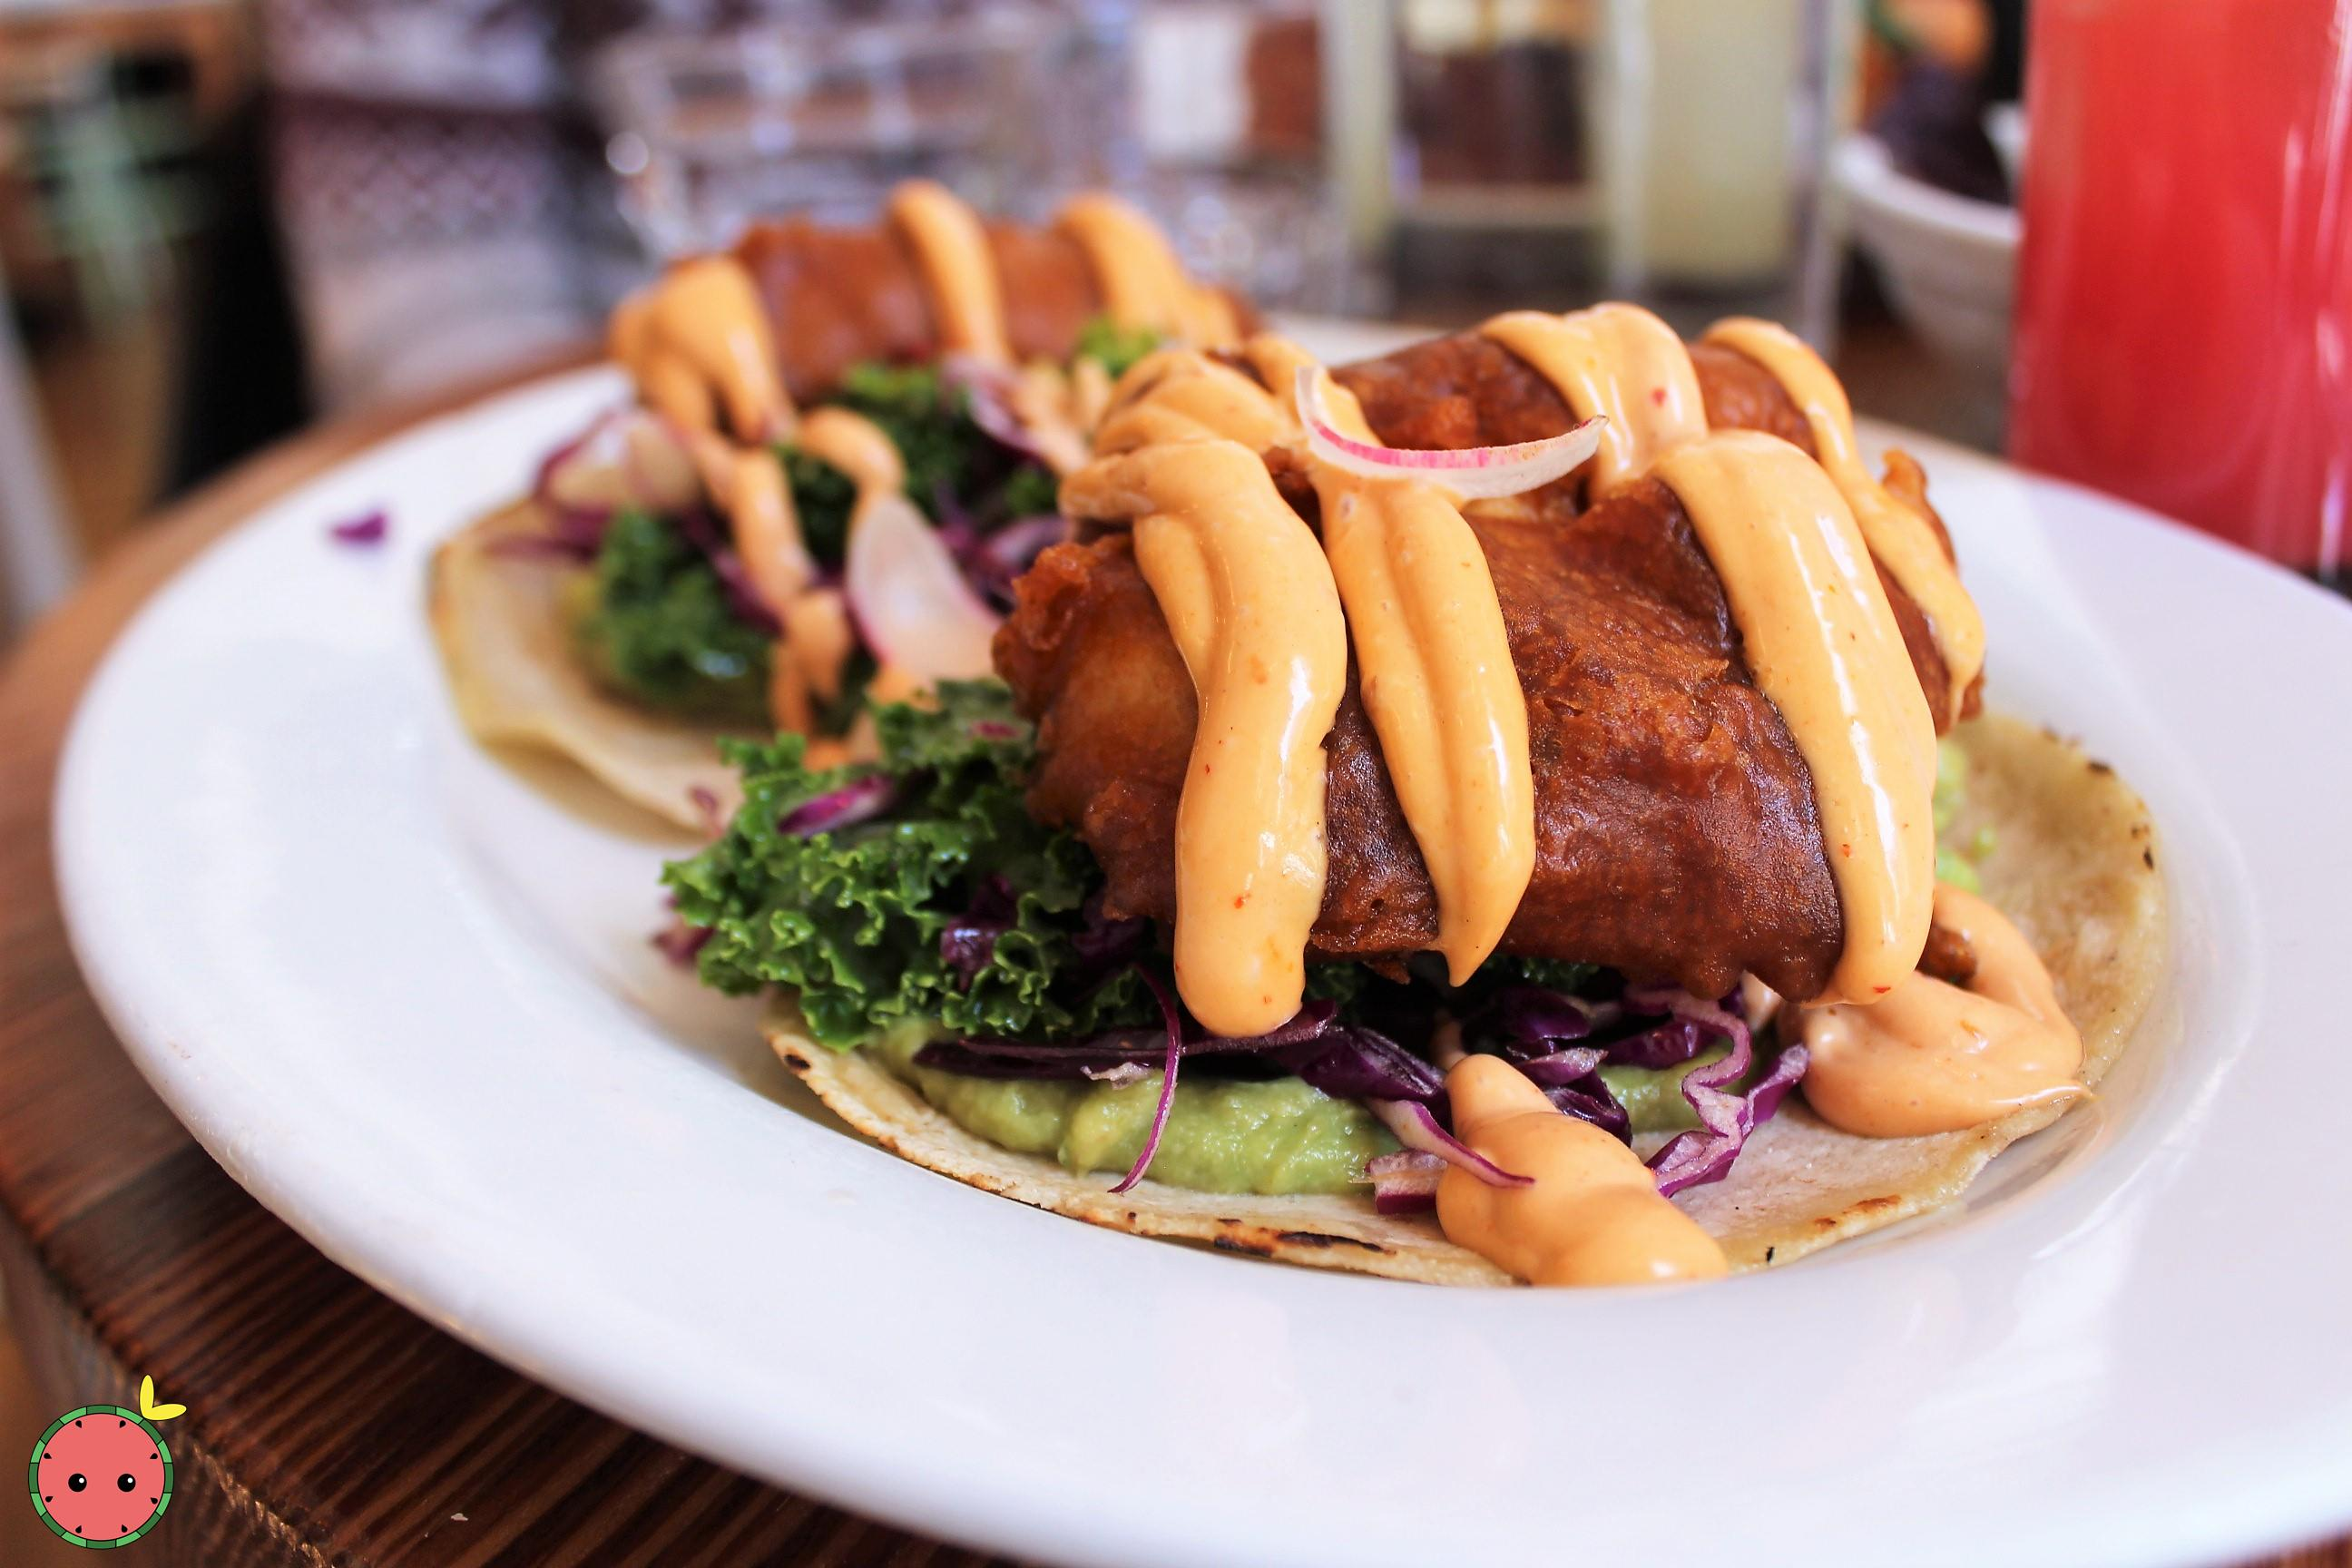 Crispy Fish Taco with cabbage, guacamole, and chipotle mayo